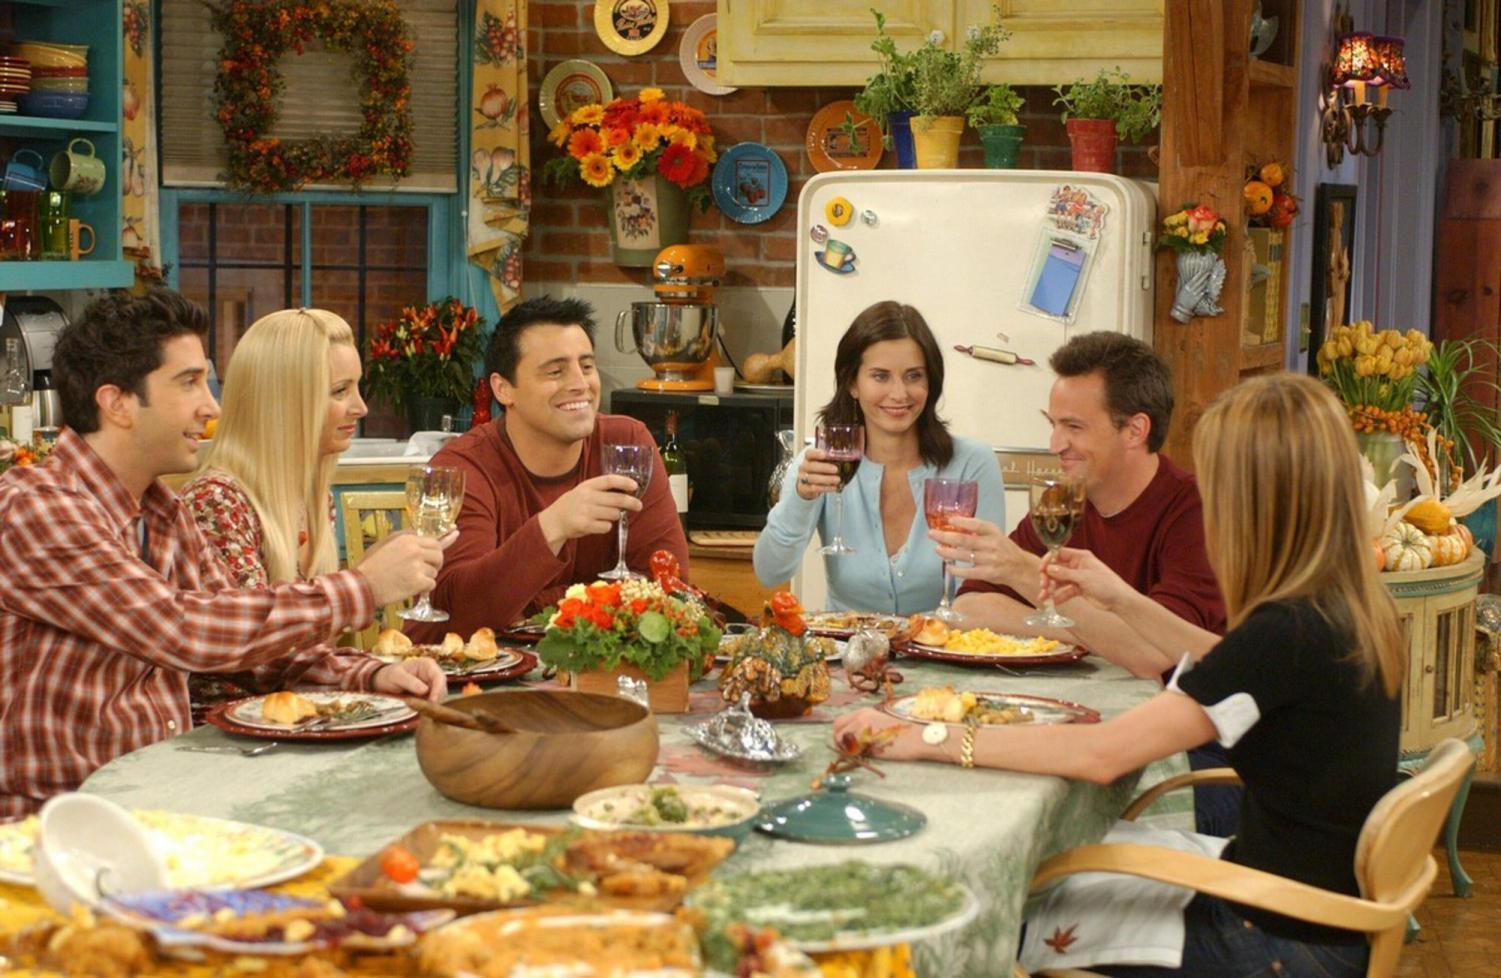 Each season, Monica, Chandler, Ross, Rachel, and Joey celebrate Thanksgiving together with turkey, stuffing, and definitely a lot of laughs. Friends is known for its hilarious Thanksgiving episodes.